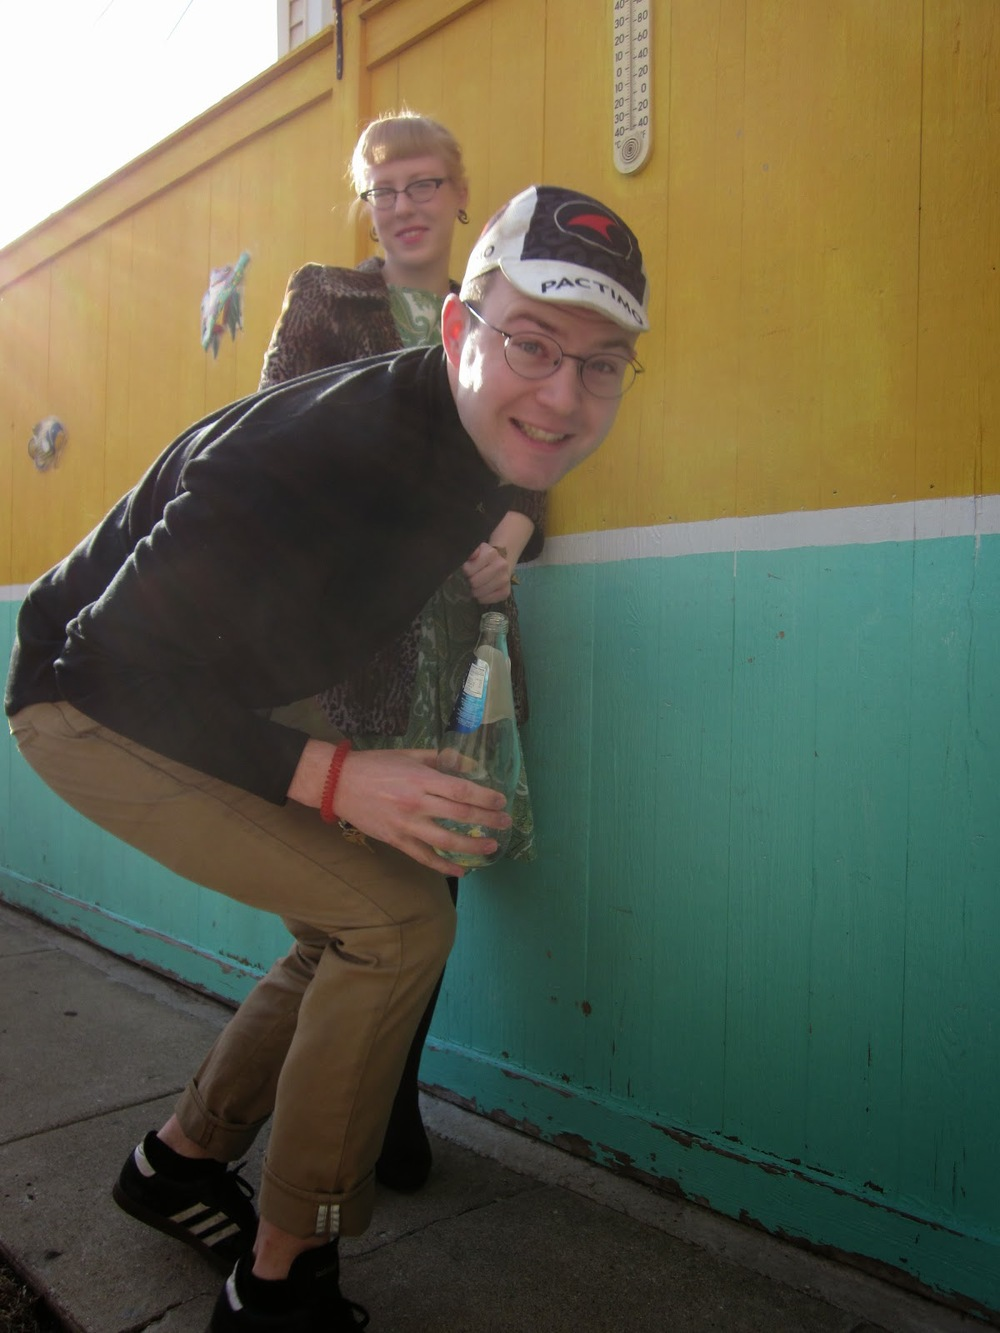 a woman leans against a fence in the background, while in the foreground a young man makes a funny face into the camera